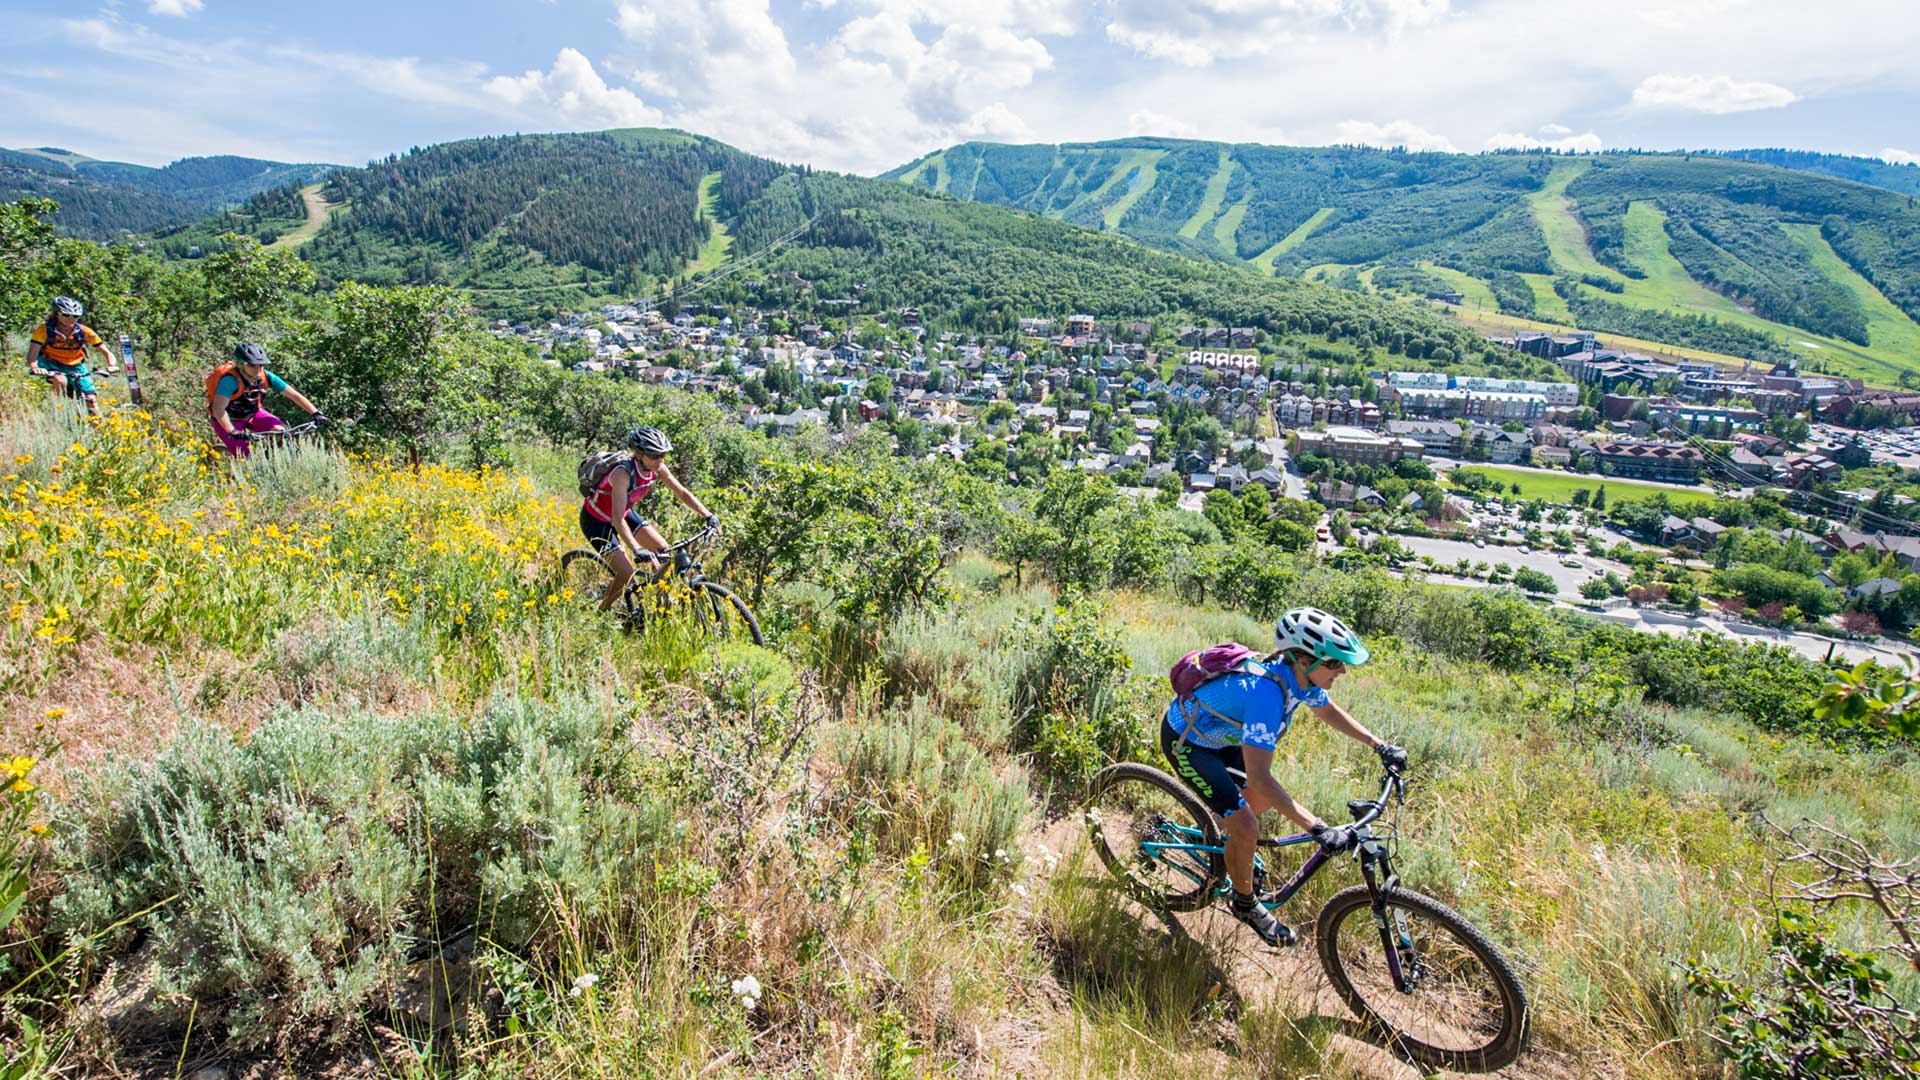 Free Women's Only Mountain Biking Ride from White Pine Touring in Park City, UT.